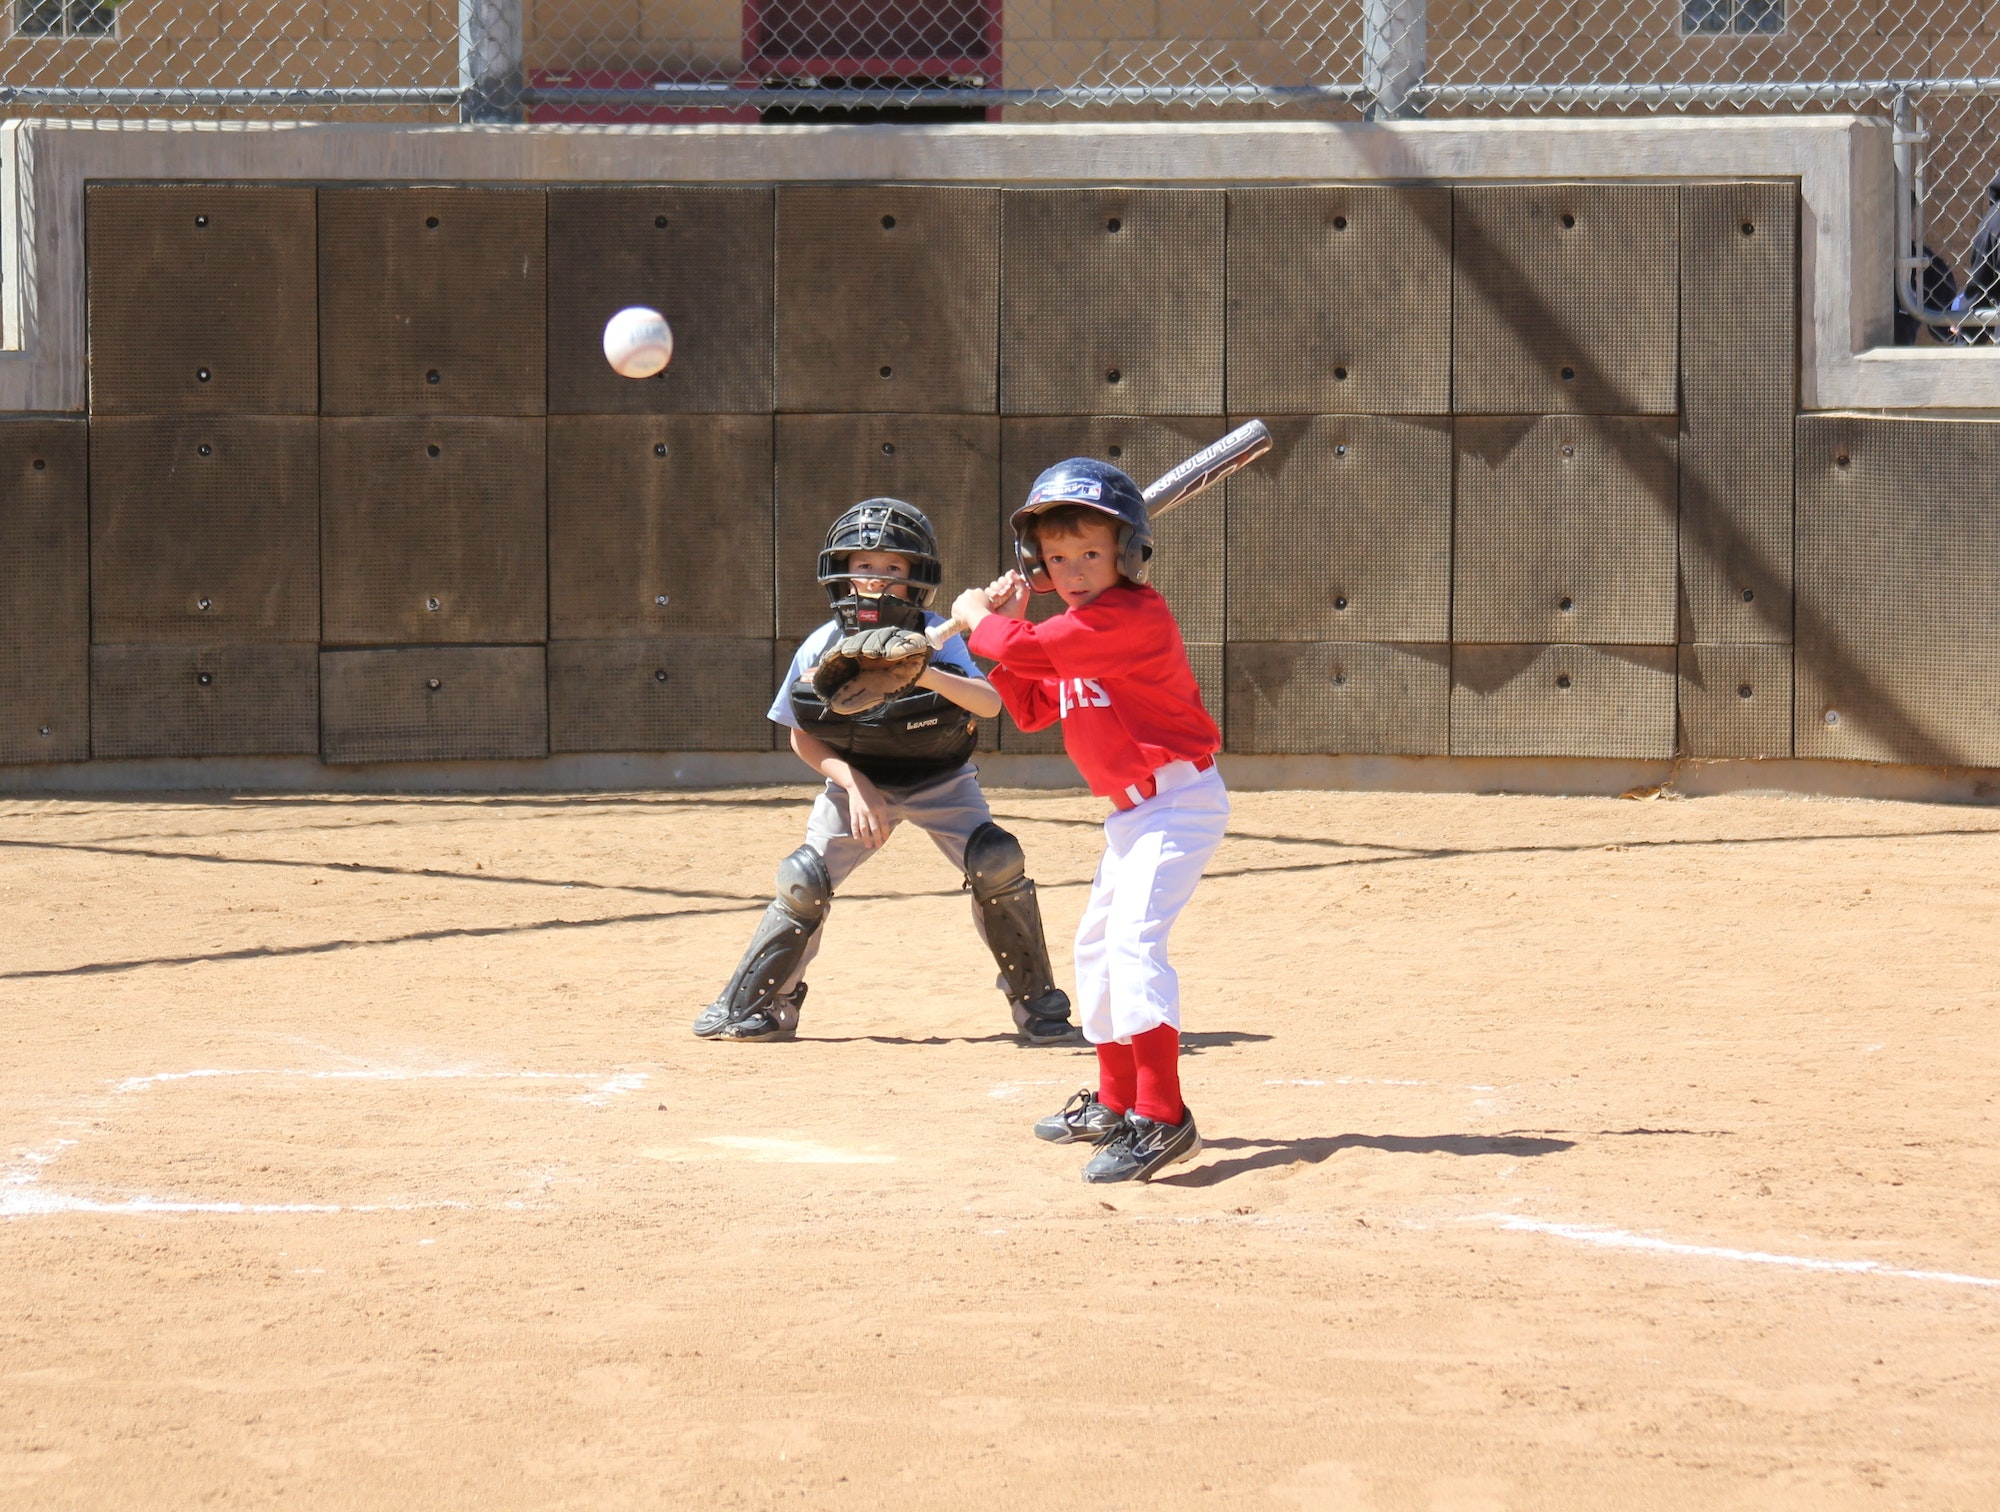 Little boy up to bat ready to swing with catcher behind him